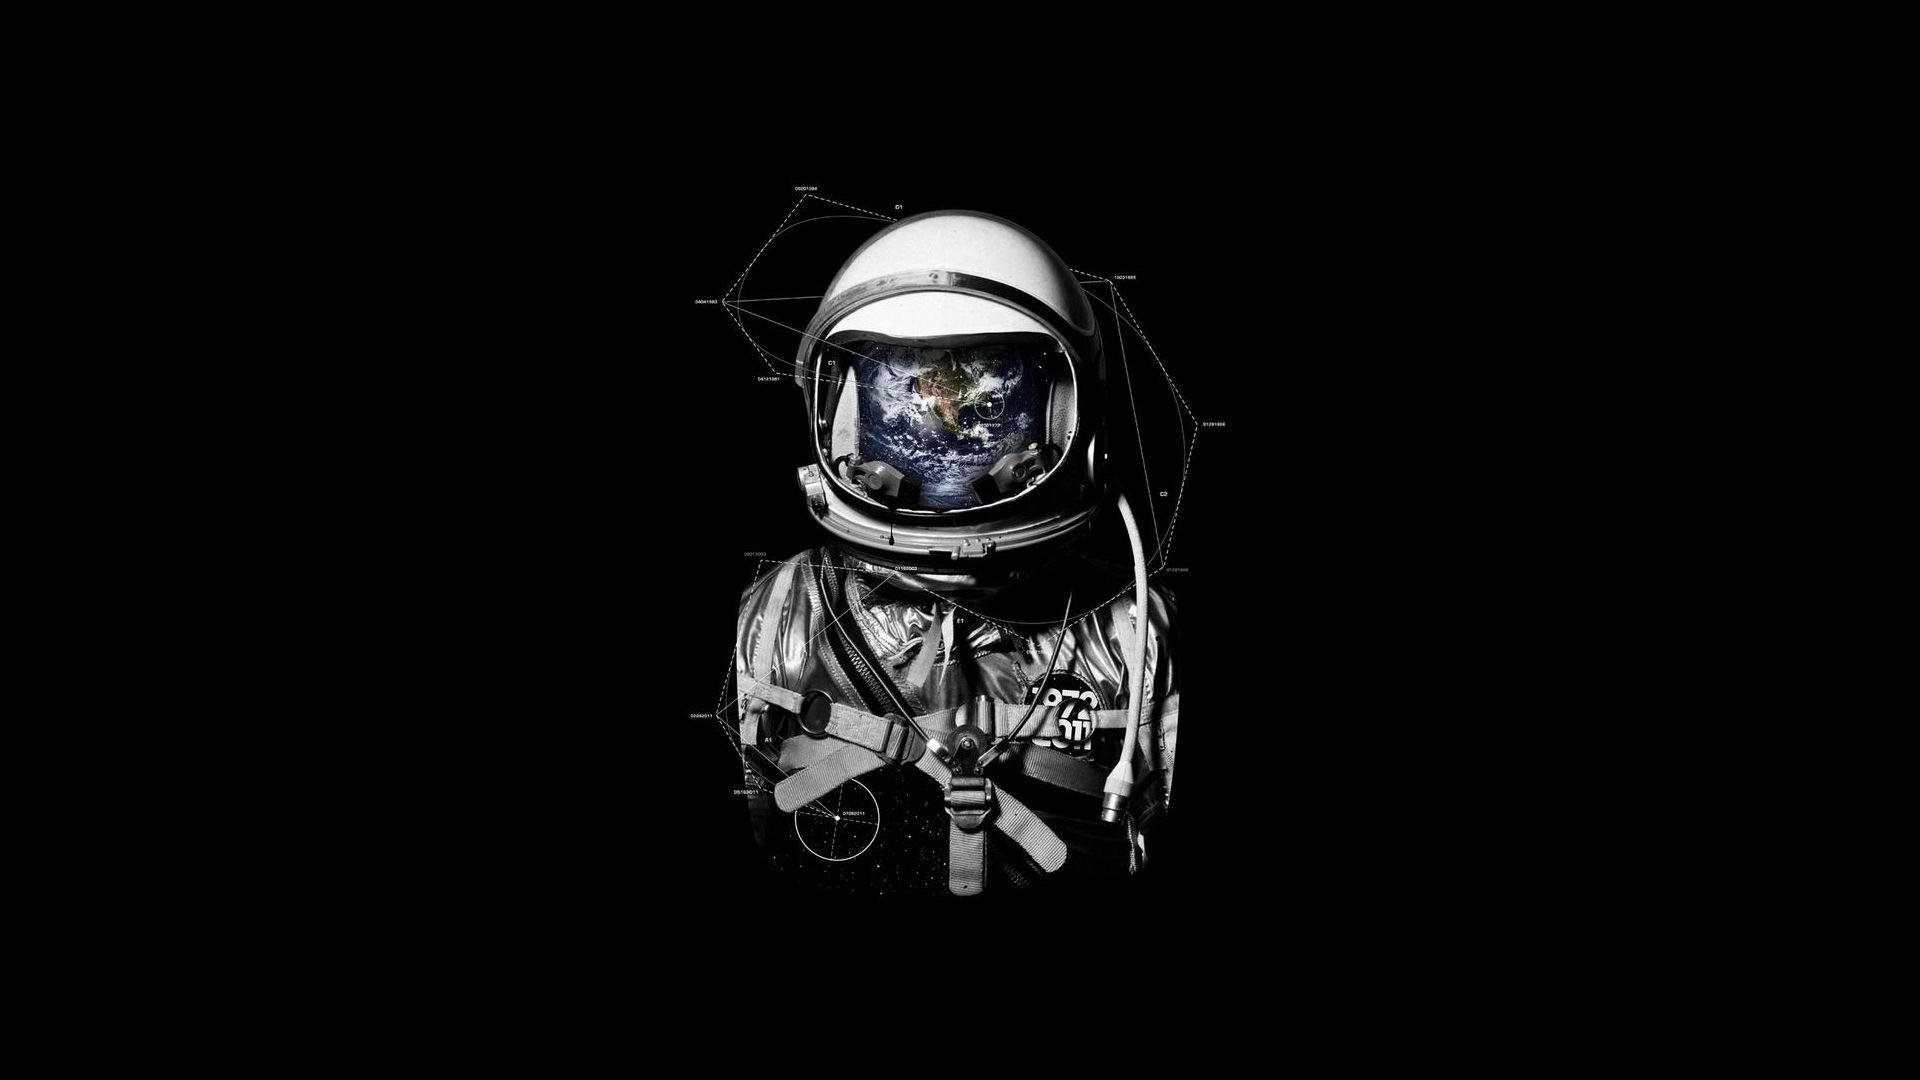 astronaut design - photo #40